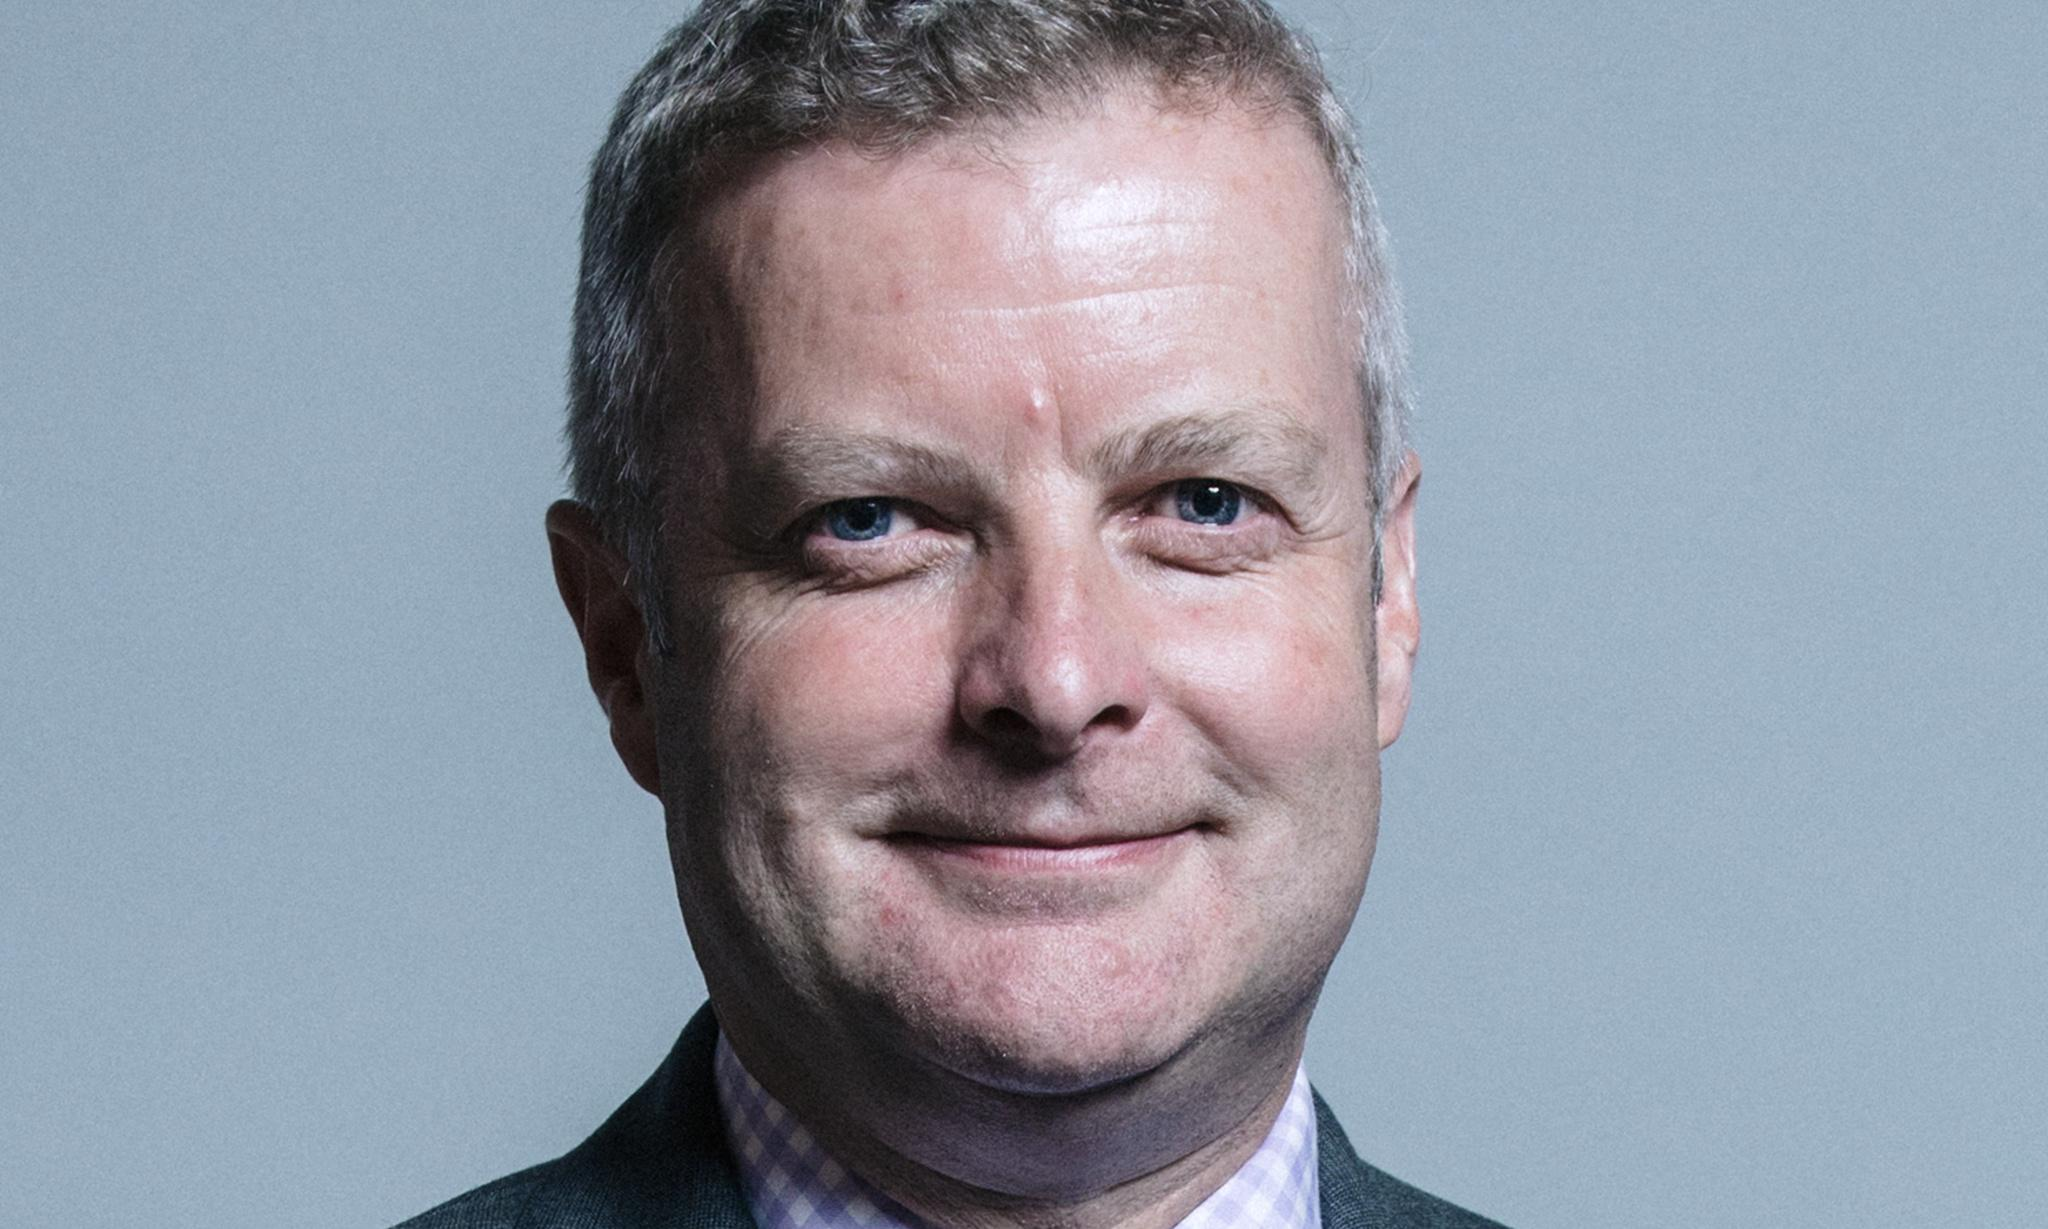 MP Christopher Davies charged for alleged false expenses claims